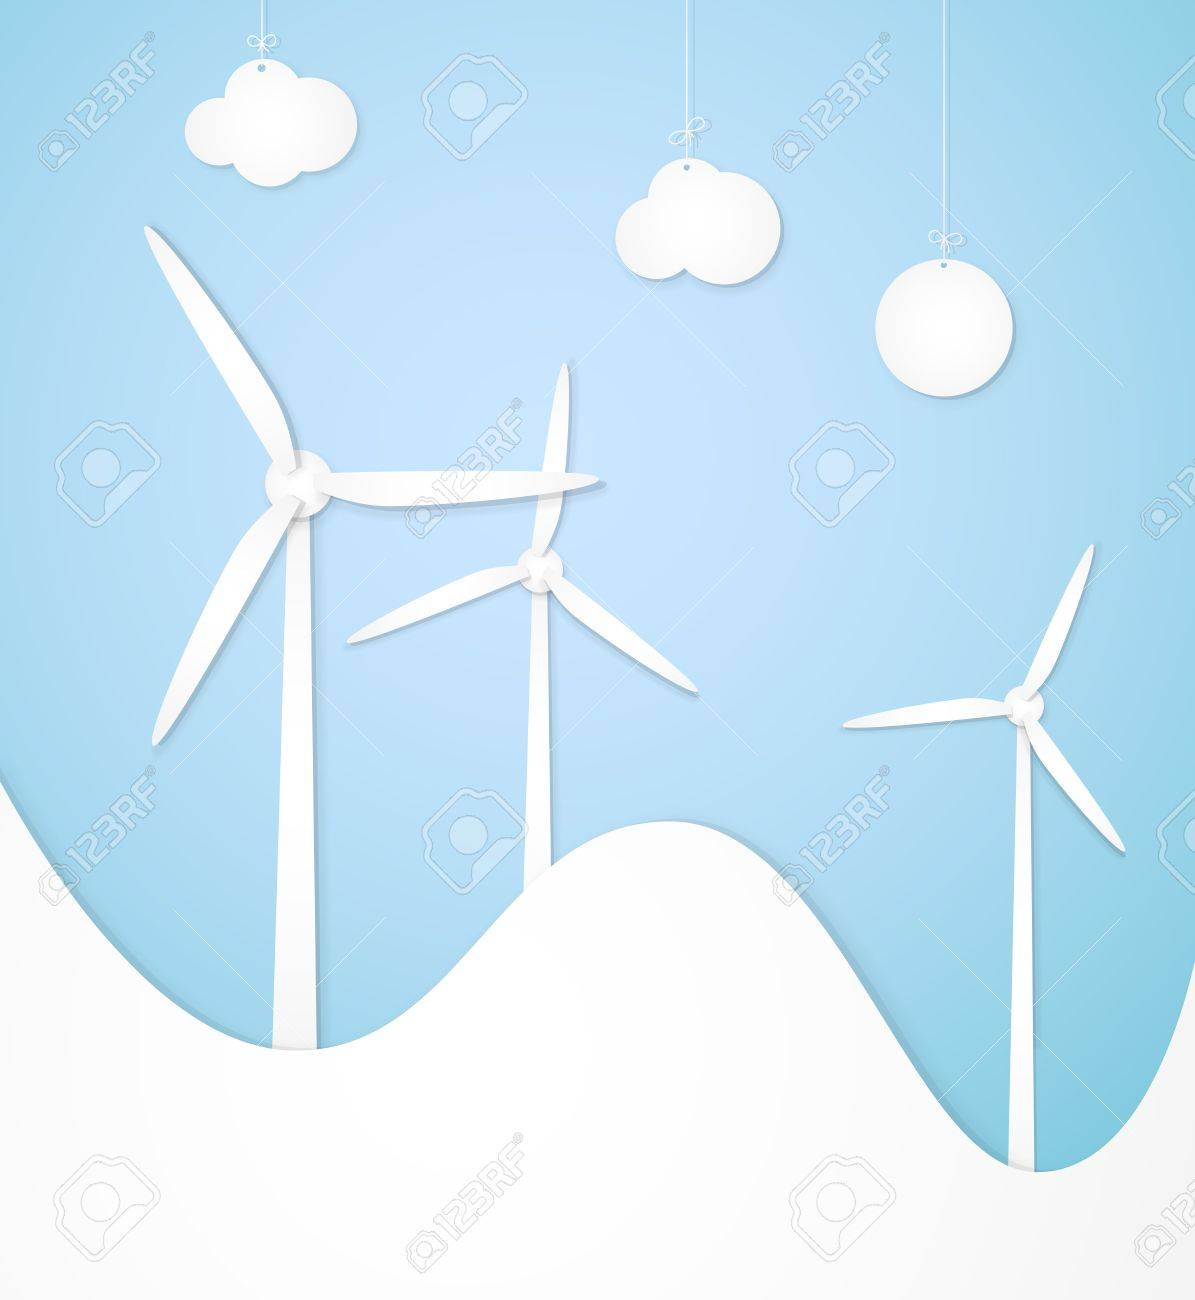 Windmills, lined paper, an alternative energy source Stock Vector - 12834222